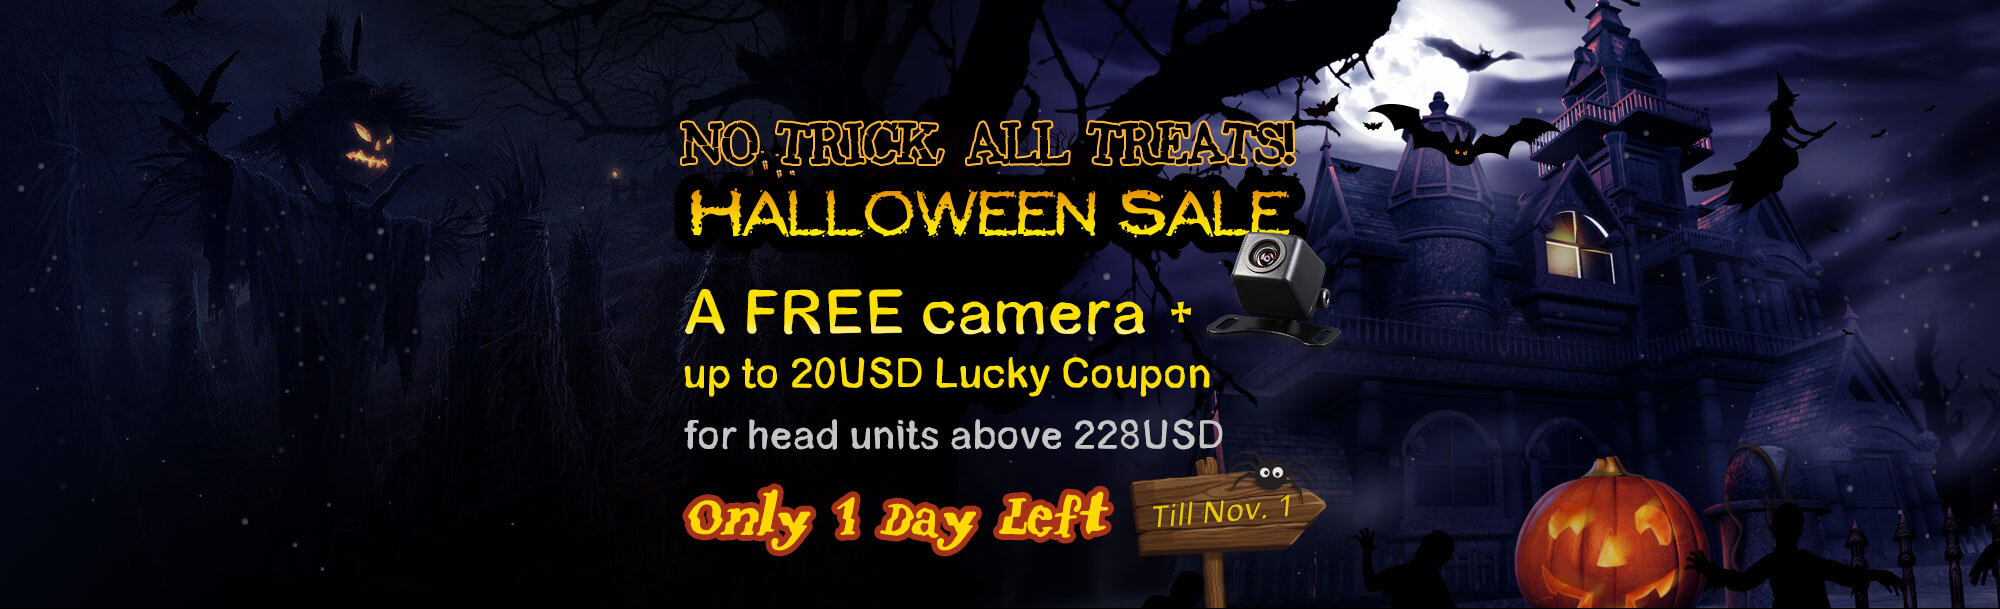 Get Android 5.1 Car GPS on this Big Happy Halloween Sale